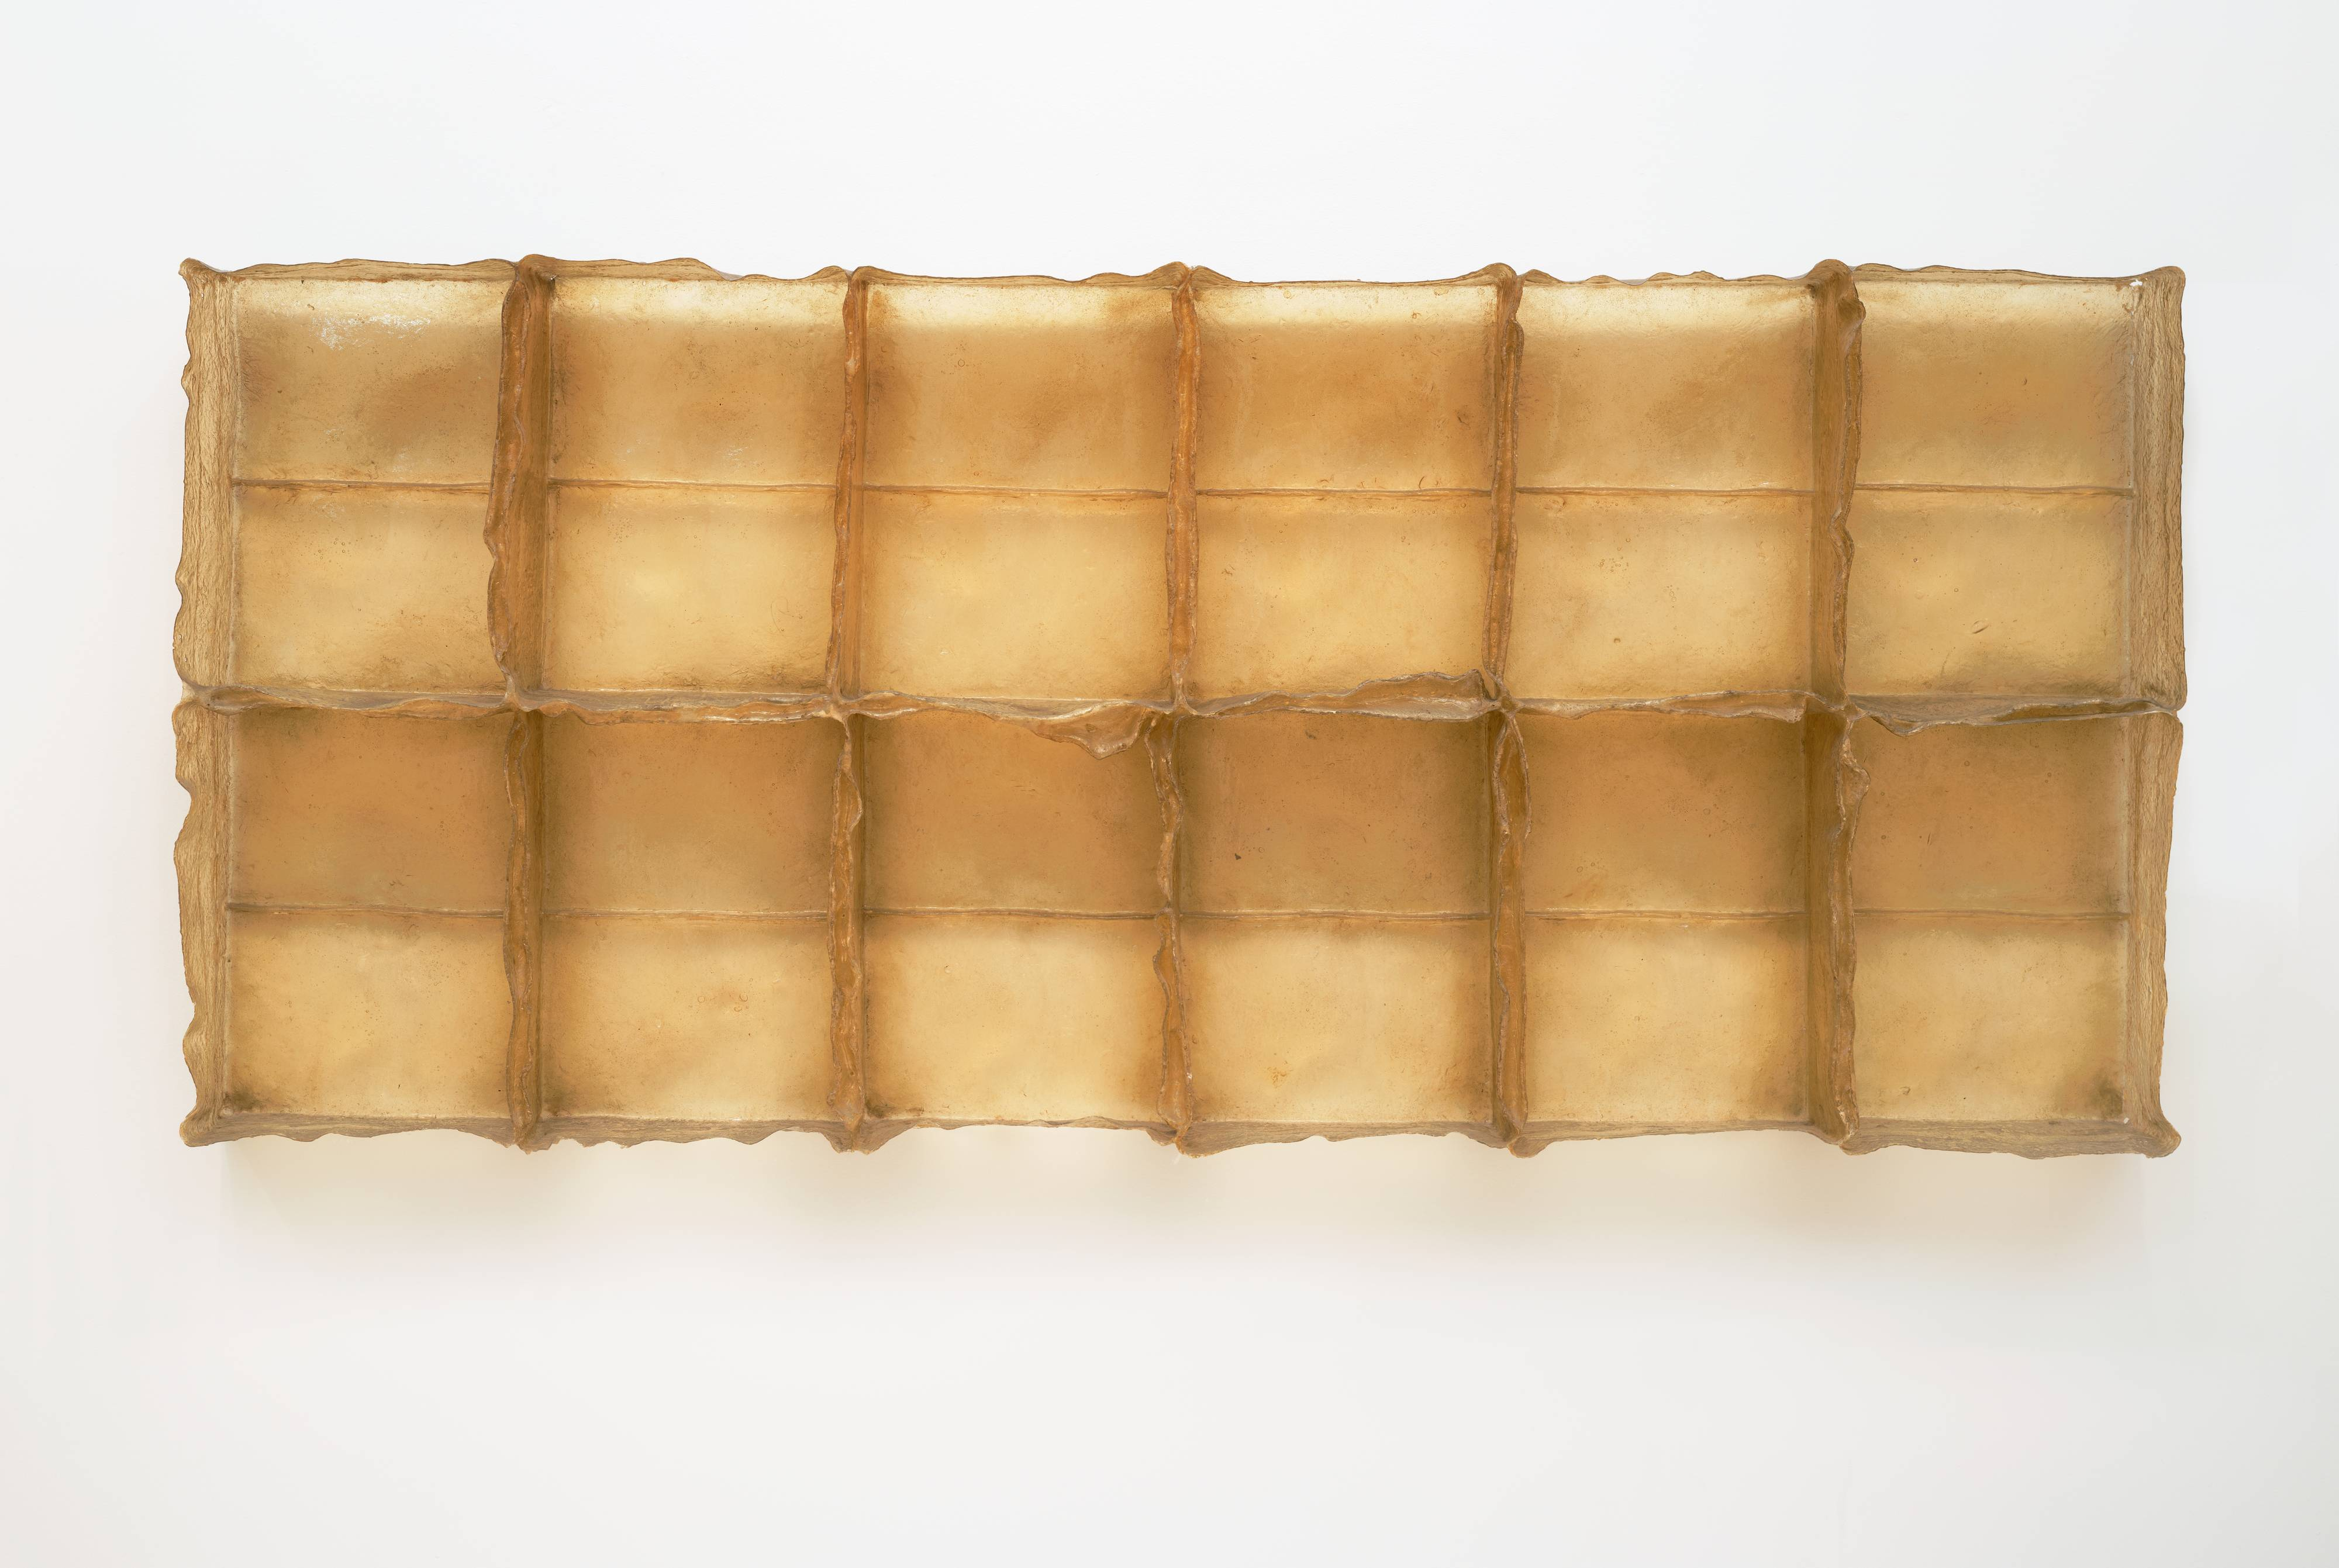 This golden-yellow sculpture resembles a giant ice cube tray hanging horizontally on a wall, with the open, empty, rectangular niches facing us. The piece is more than three feet tall and over seven feet long with six niches on top and six on the bottom. Each individual compartment is divided in two by a thin horizontal line, giving the impression that there are, in fact, four rows of rectangles. The piece is constructed of fiberglass and polyester resin, giving it the look of golden honeycomb. The edges of the open boxes are imperfect and ragged, like peeling skin, in contrast to the structure itself, which is precise and orderly.